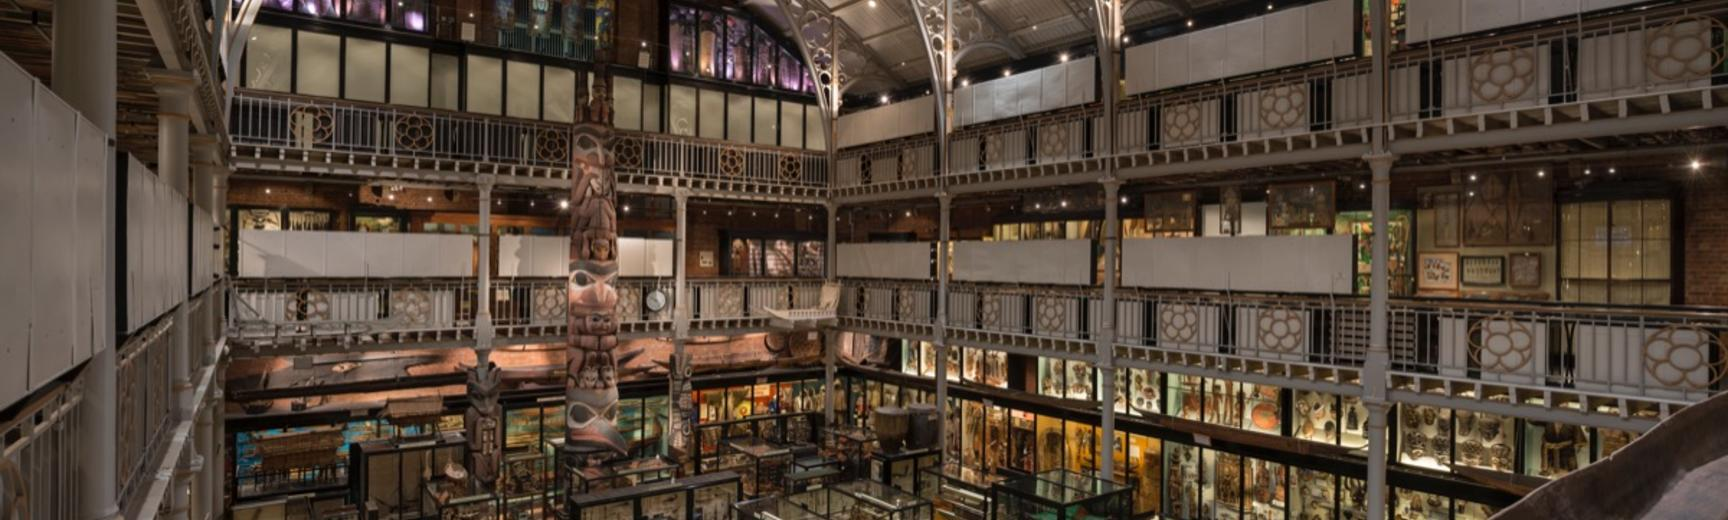 overview of the Pitt Rivers museum